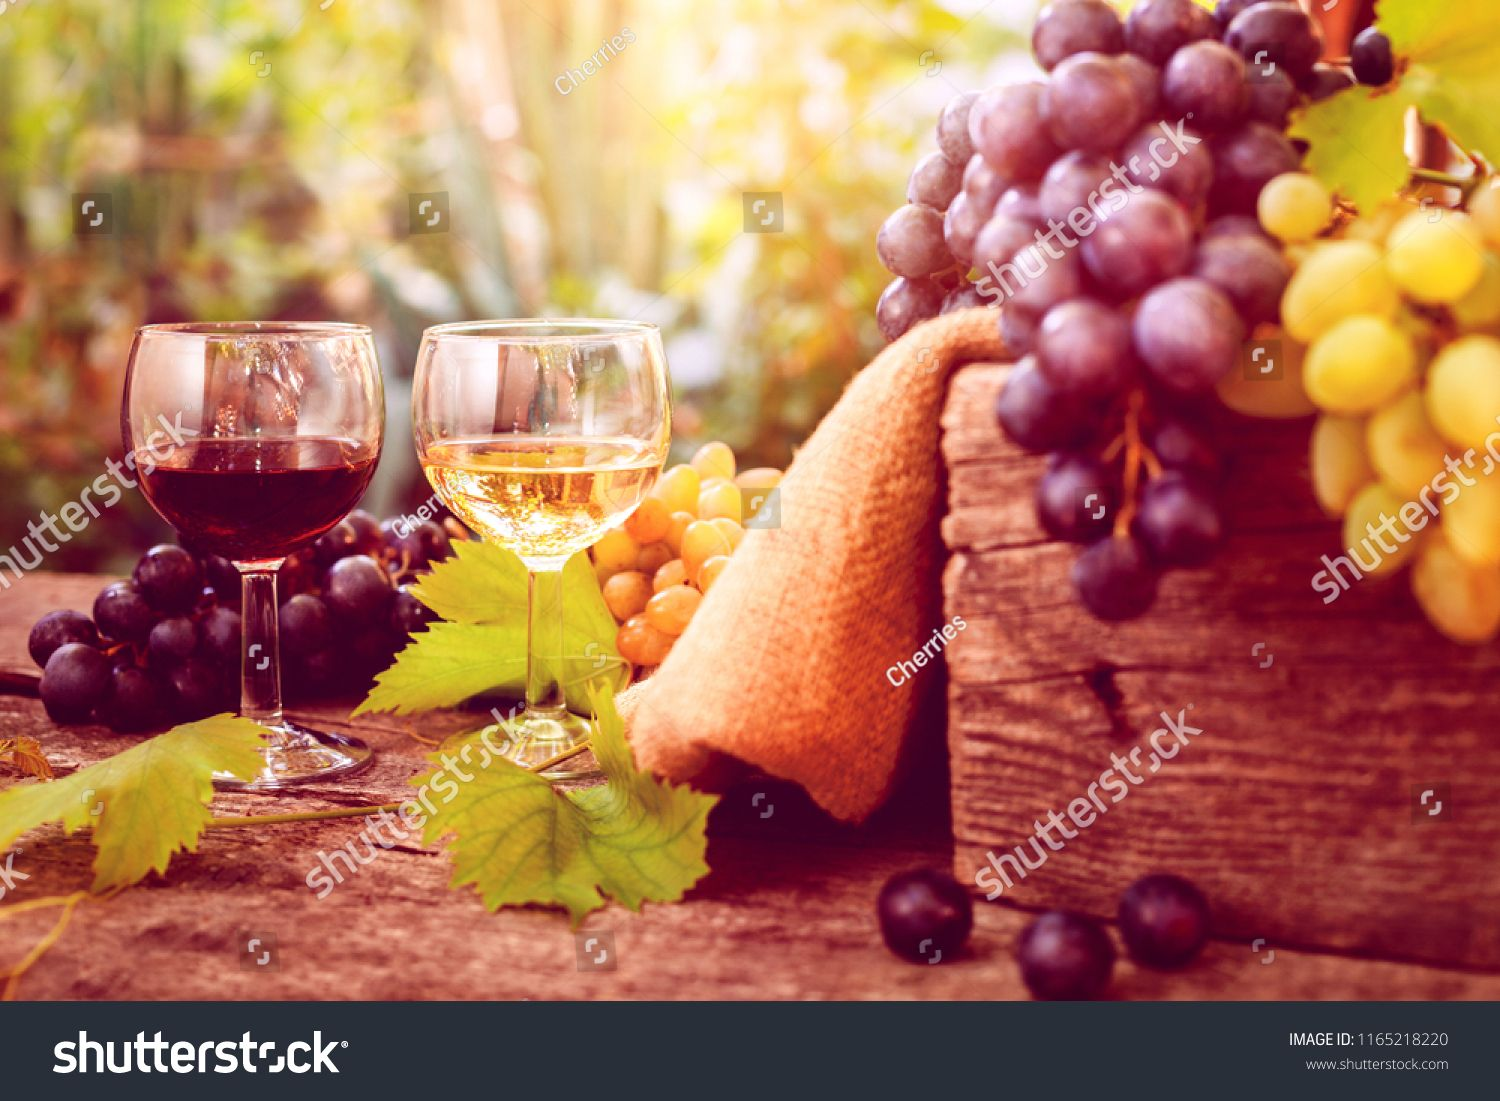 Glass Of Red And White Wine With Dark And White Grapes On The Side Ad Ad White Red Glass Wine In 2020 Red And White White Wine Glass